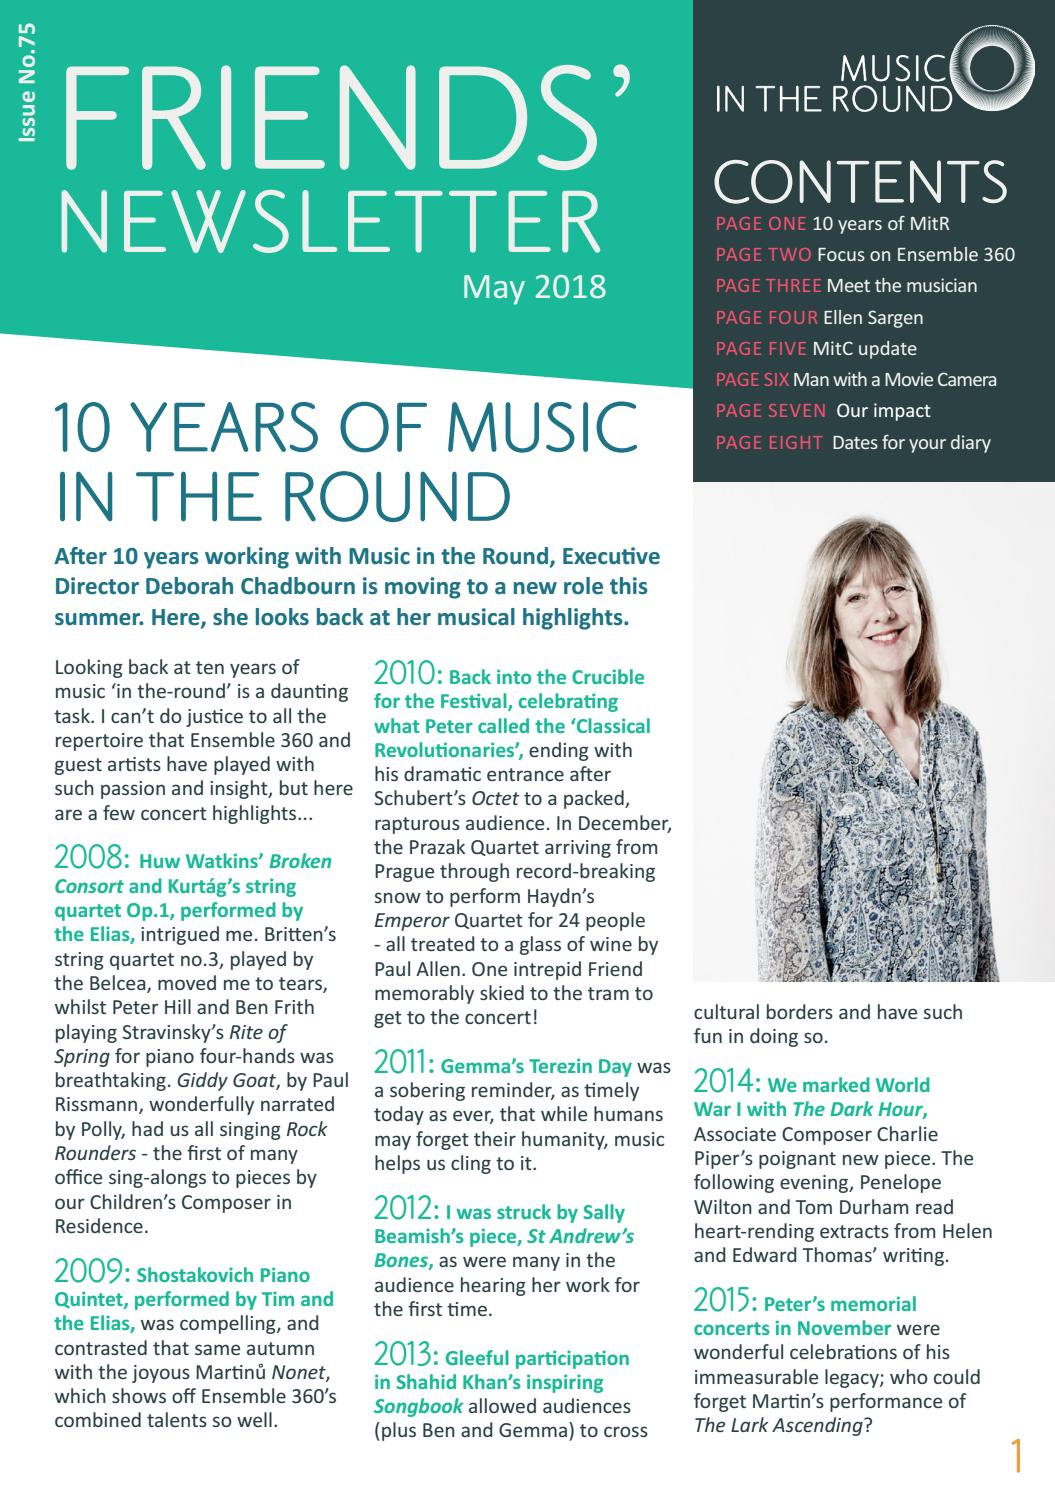 Friends' newsletter May 2018 by Music in the Round - issuu